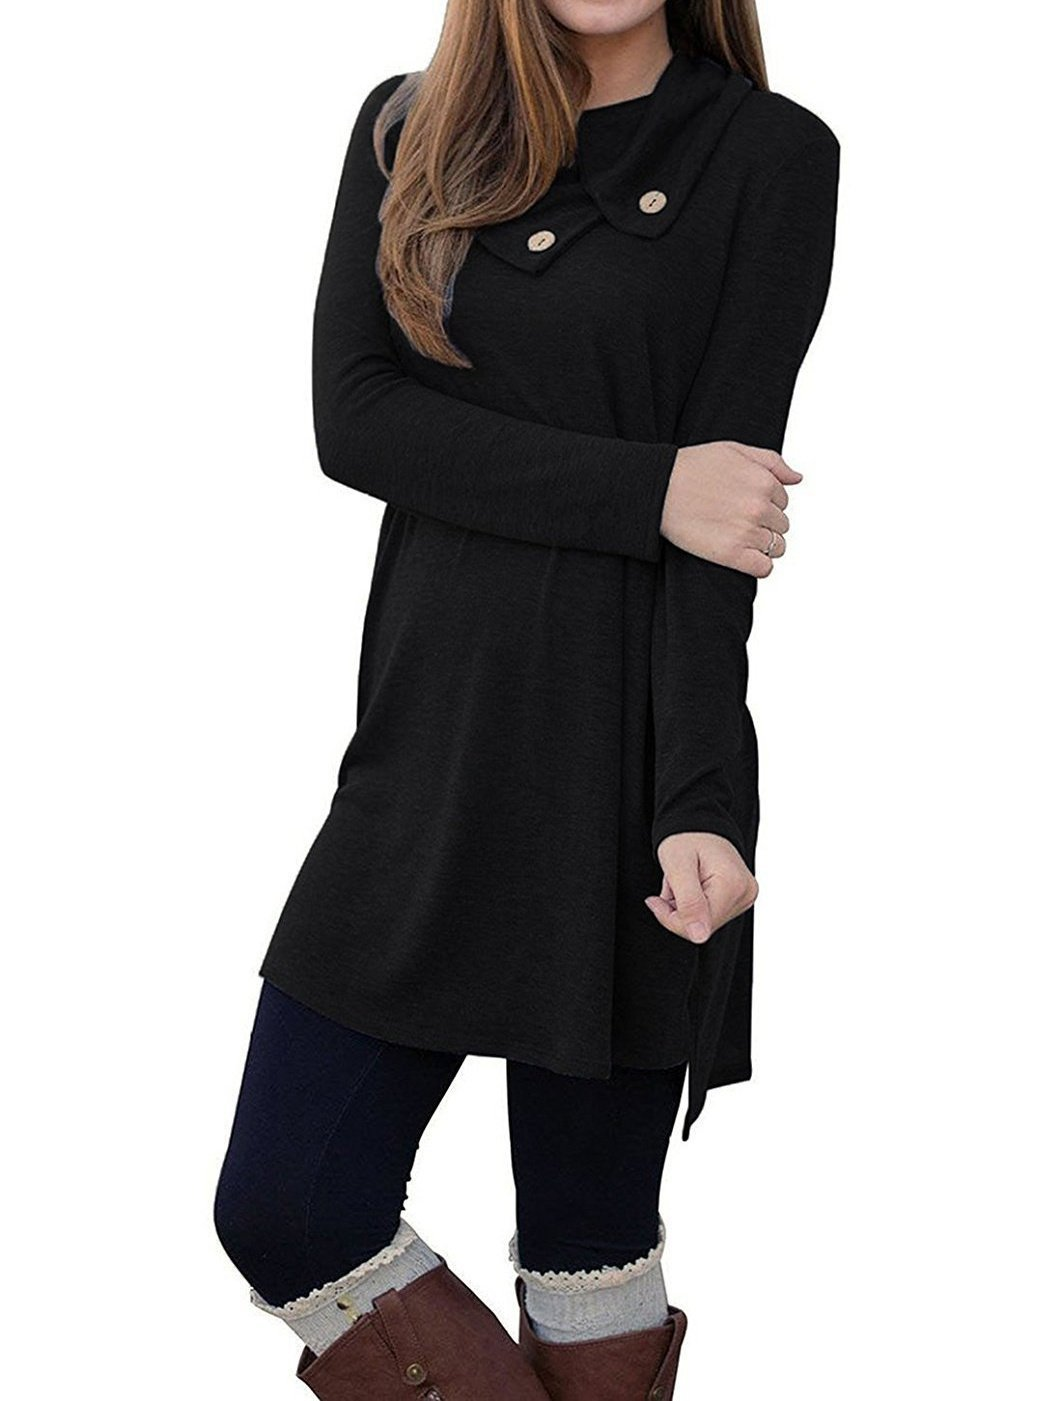 Women's Long Sleeve Dress Pure Color Pile Collar Casual Shirt Dress